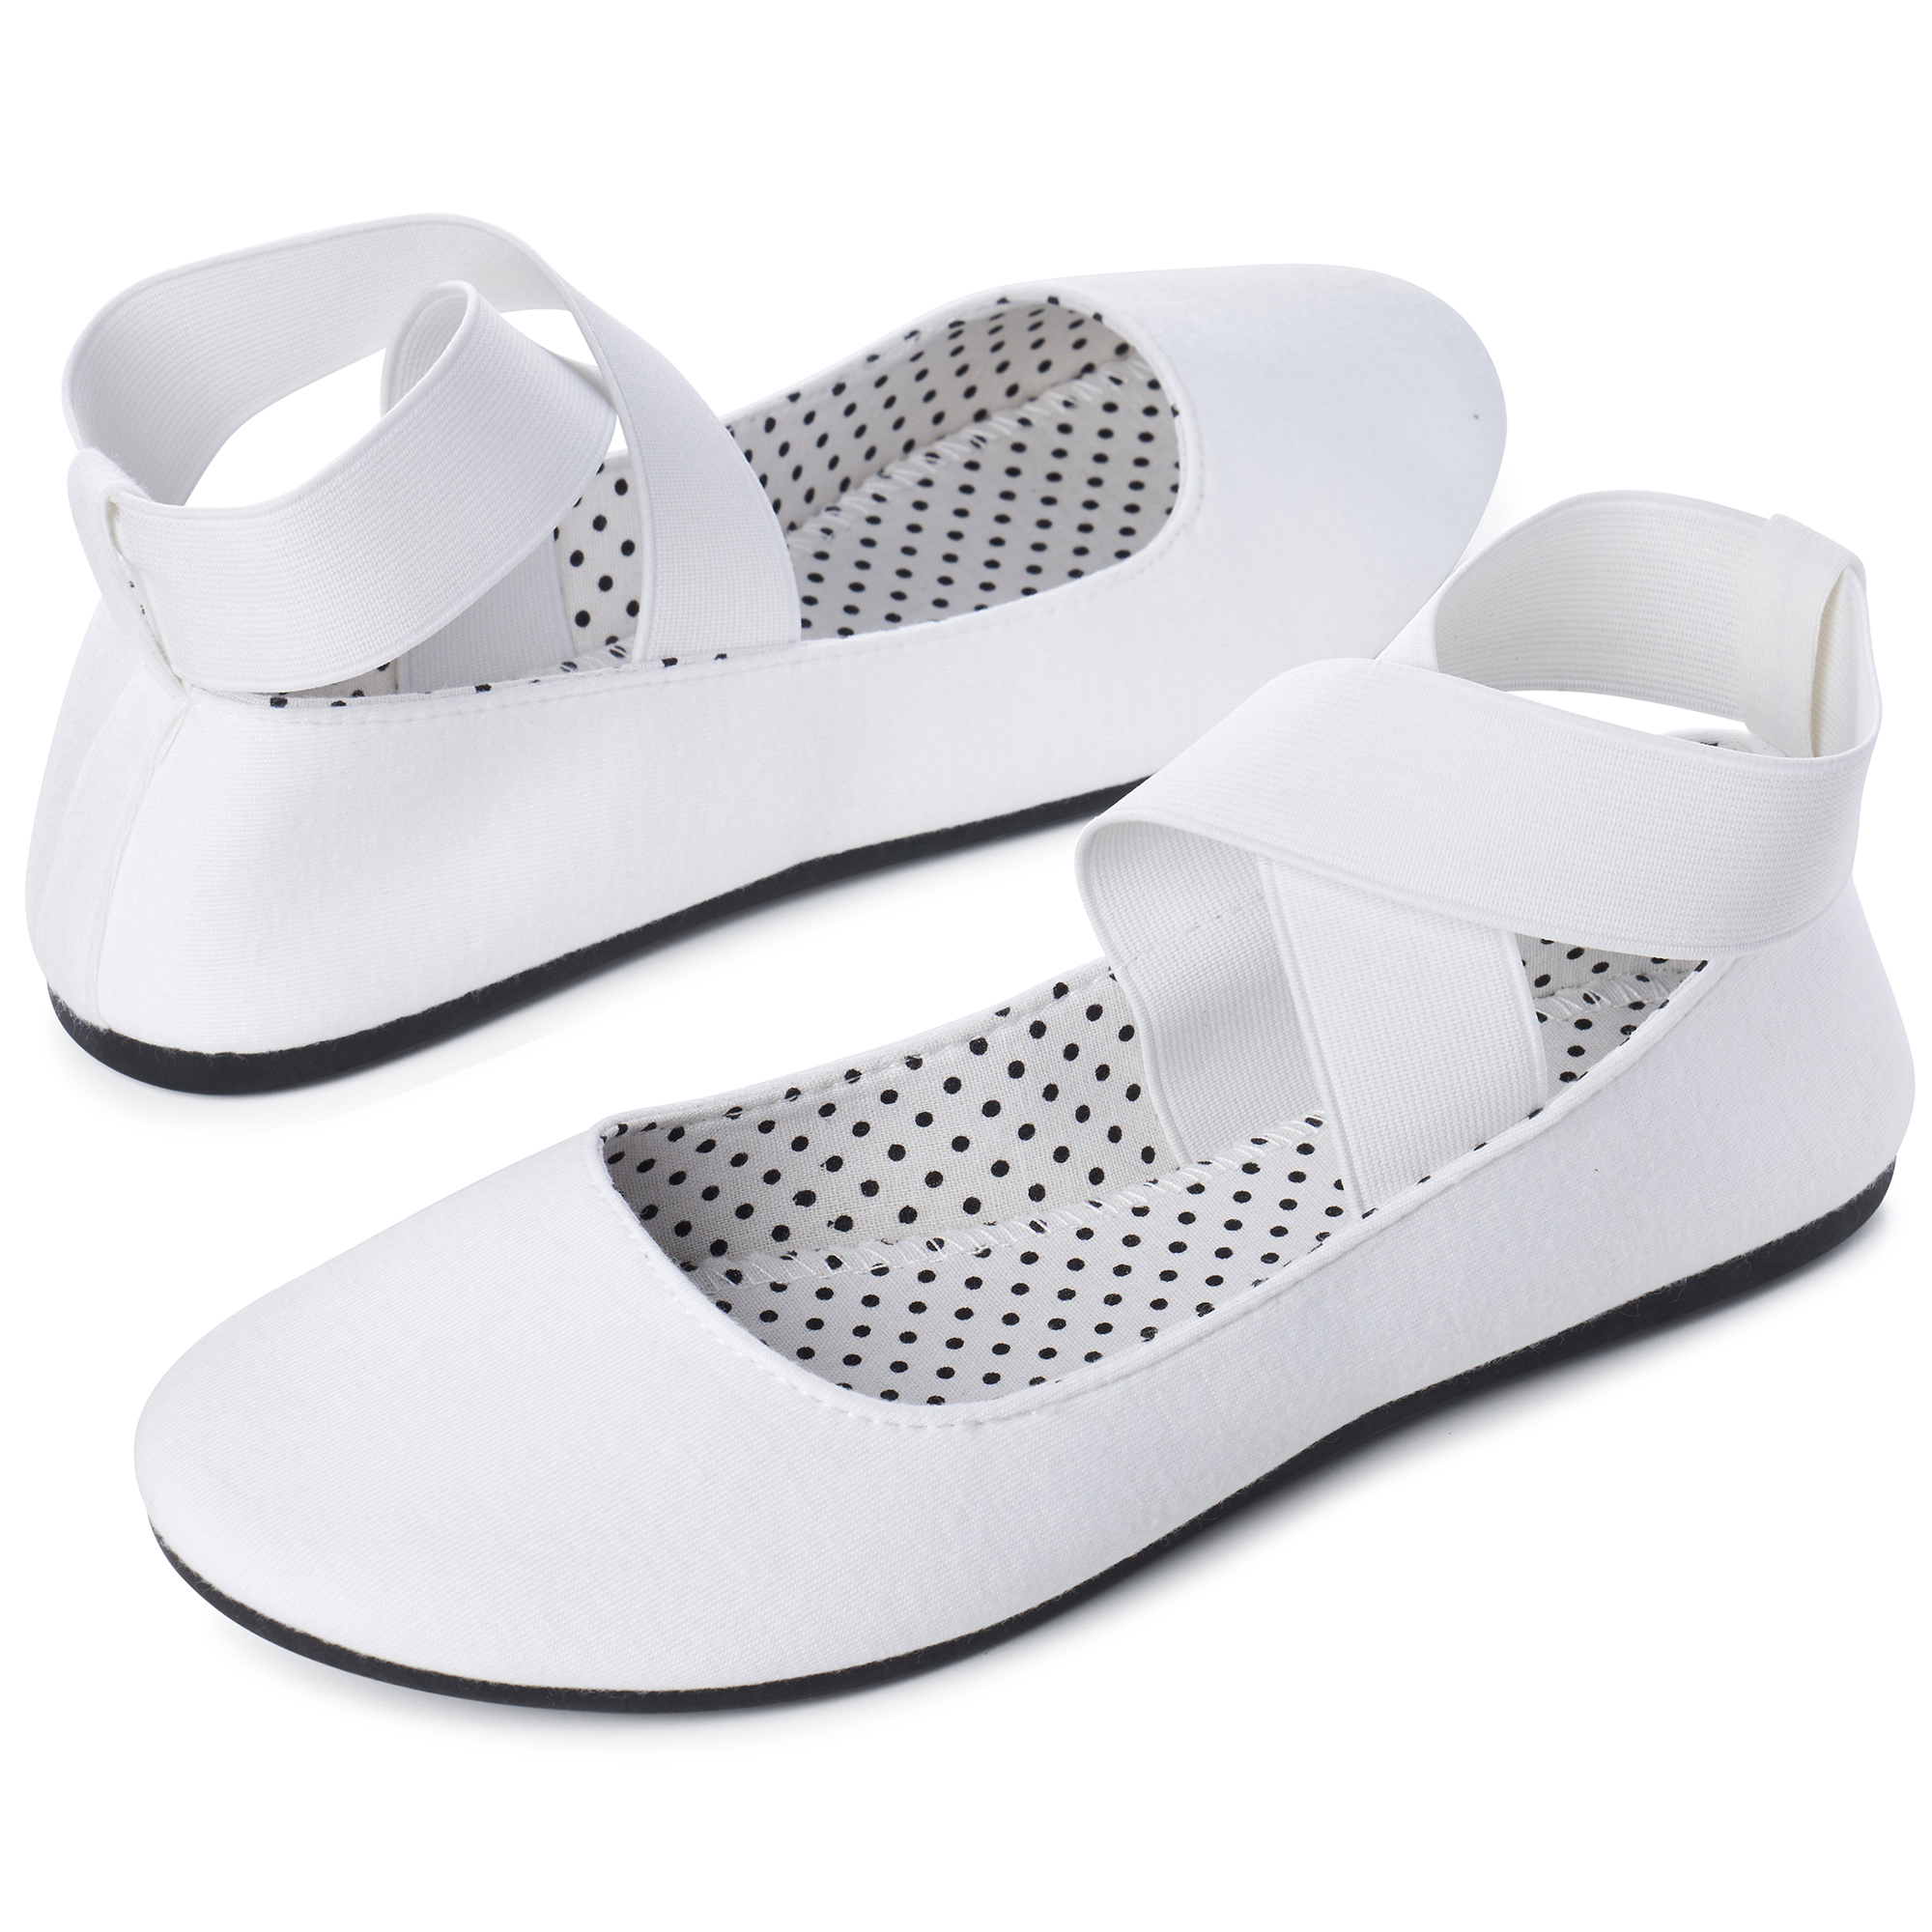 Alpine-Swiss-Peony-Womens-Ballet-Flats-Elastic-Ankle-Strap-Shoes-Slip-On-Loafers thumbnail 67